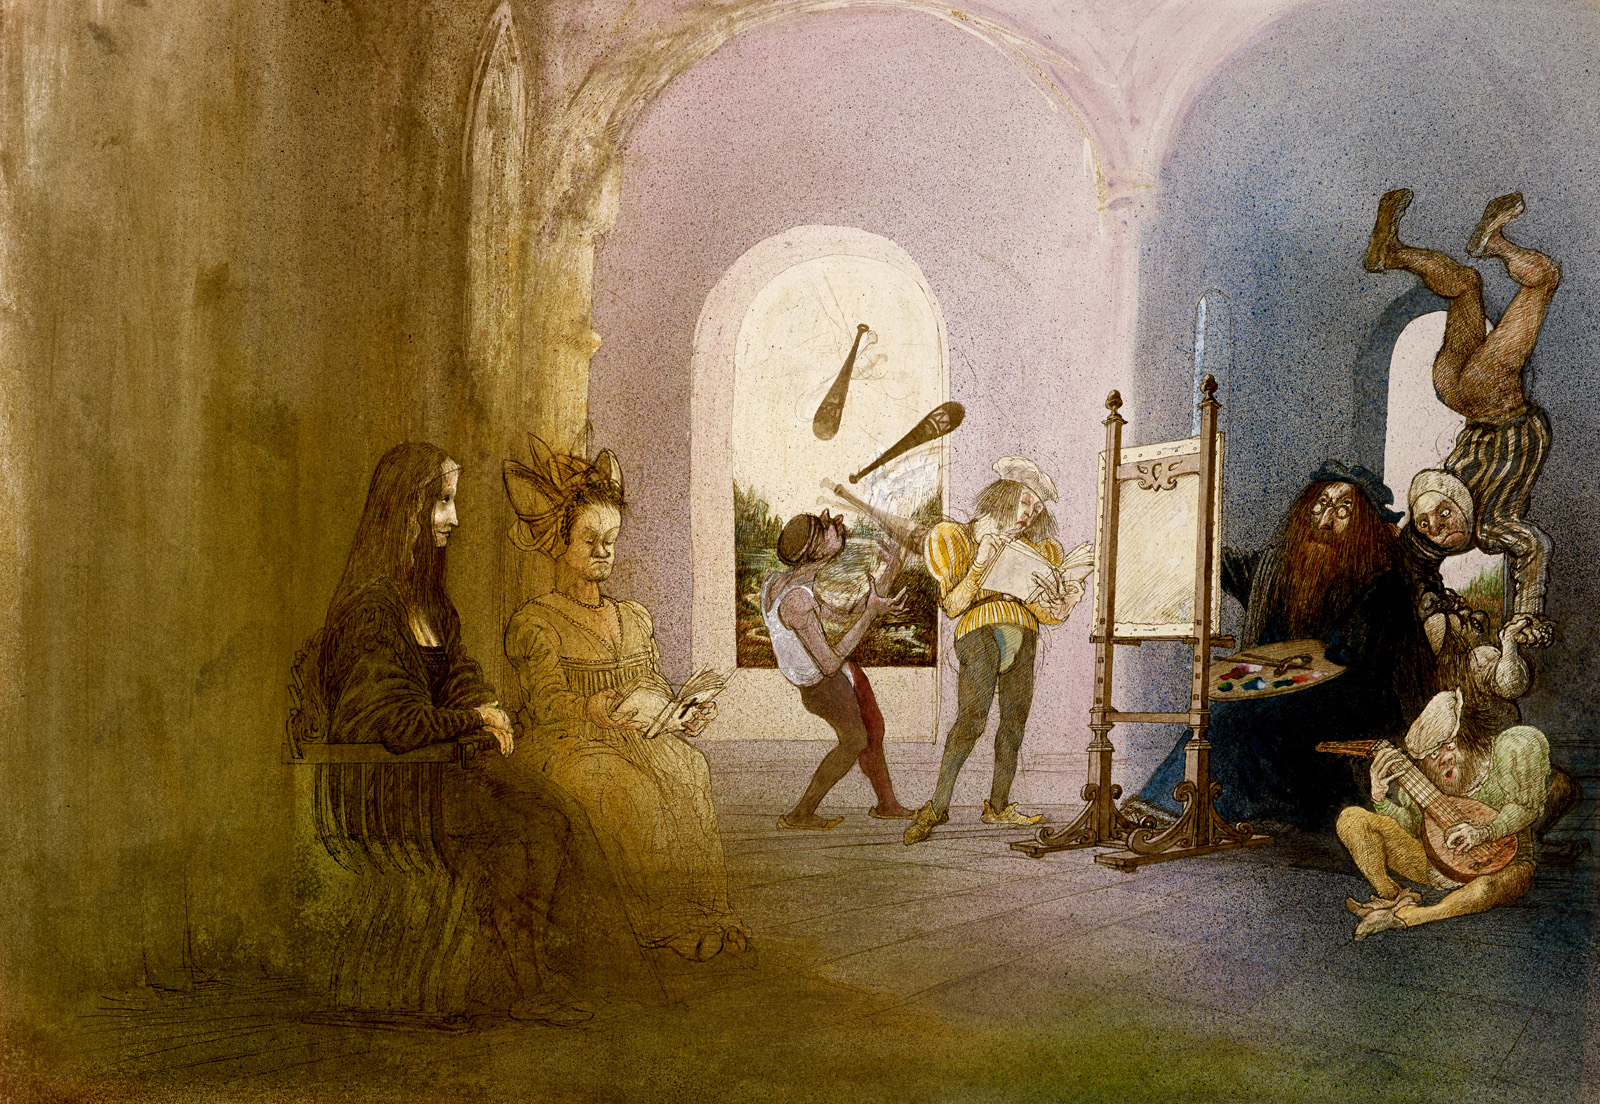 Ralph Steadman imagines here that Leonardo da Vinci paints the Mona Lisa.